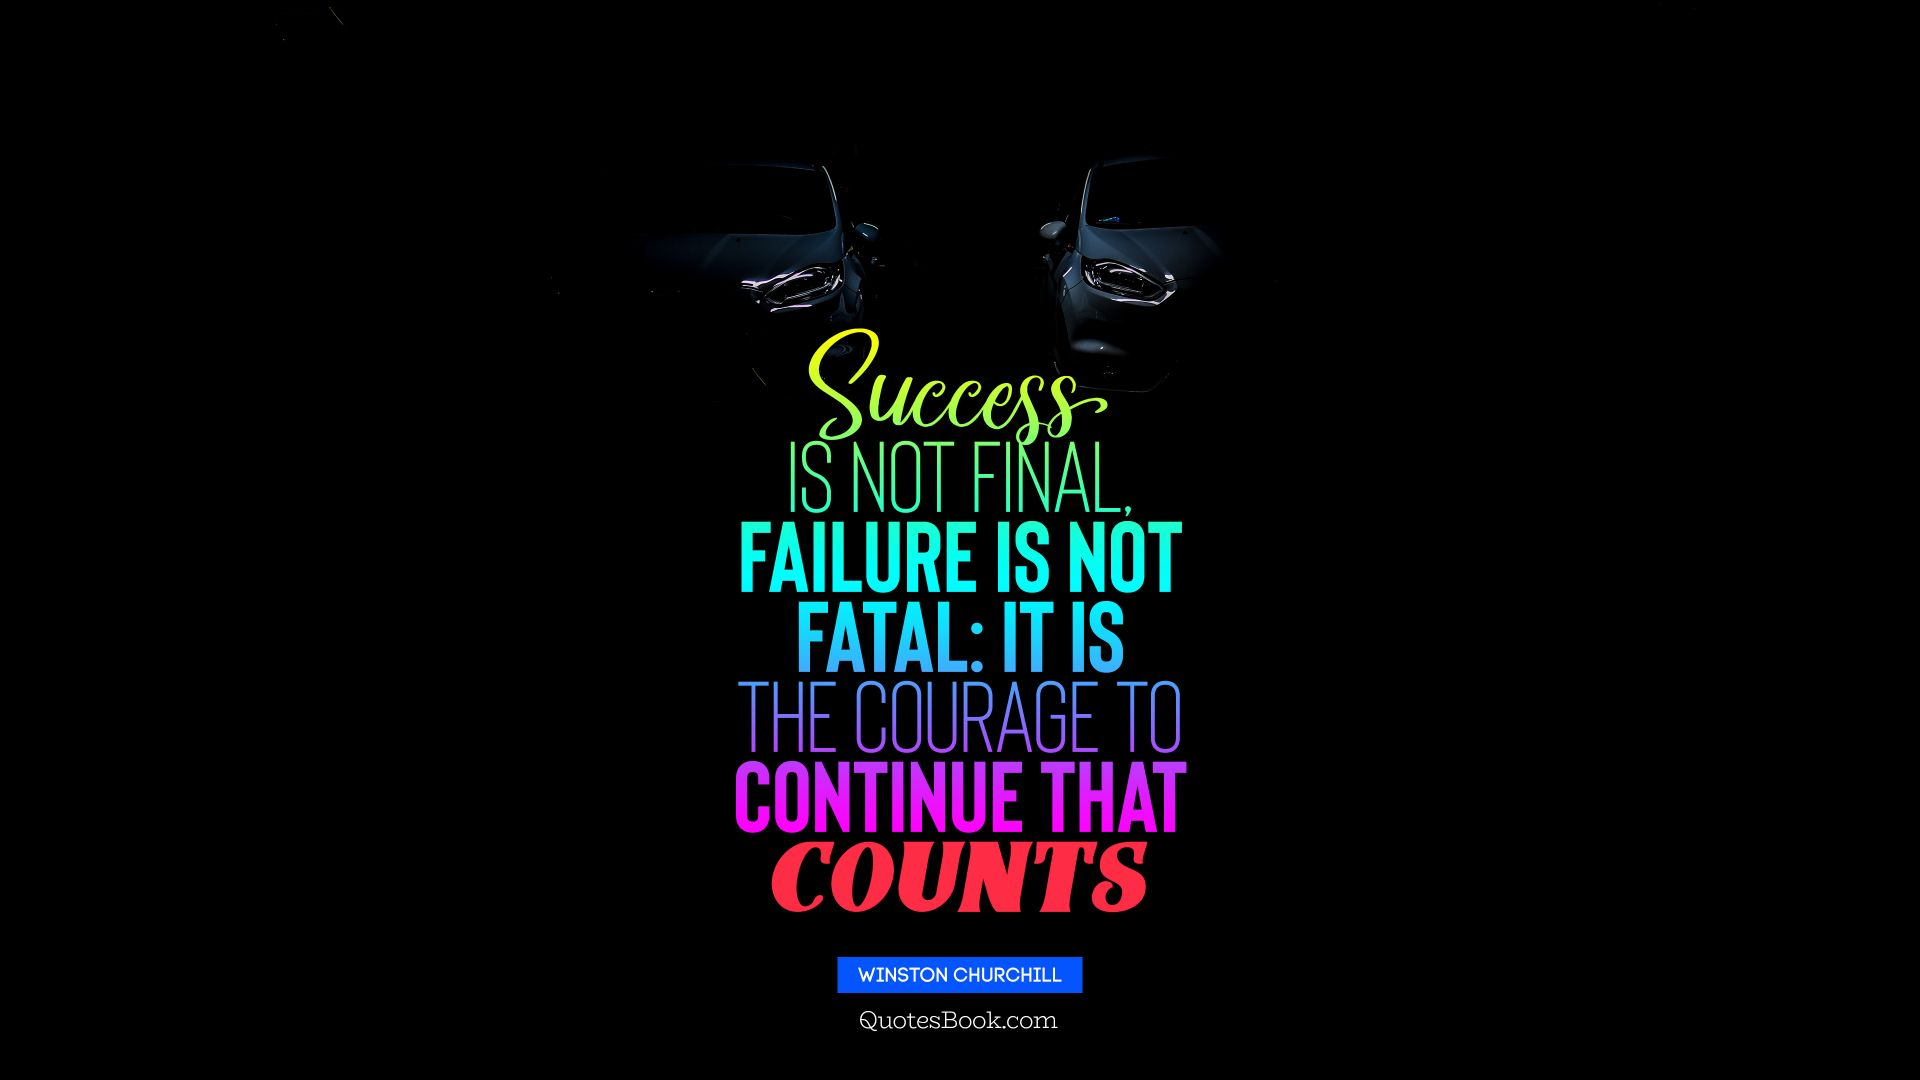 Success is not final, failure is not fatal: it is the courage to continue that counts. - Quote by Winston Churchill